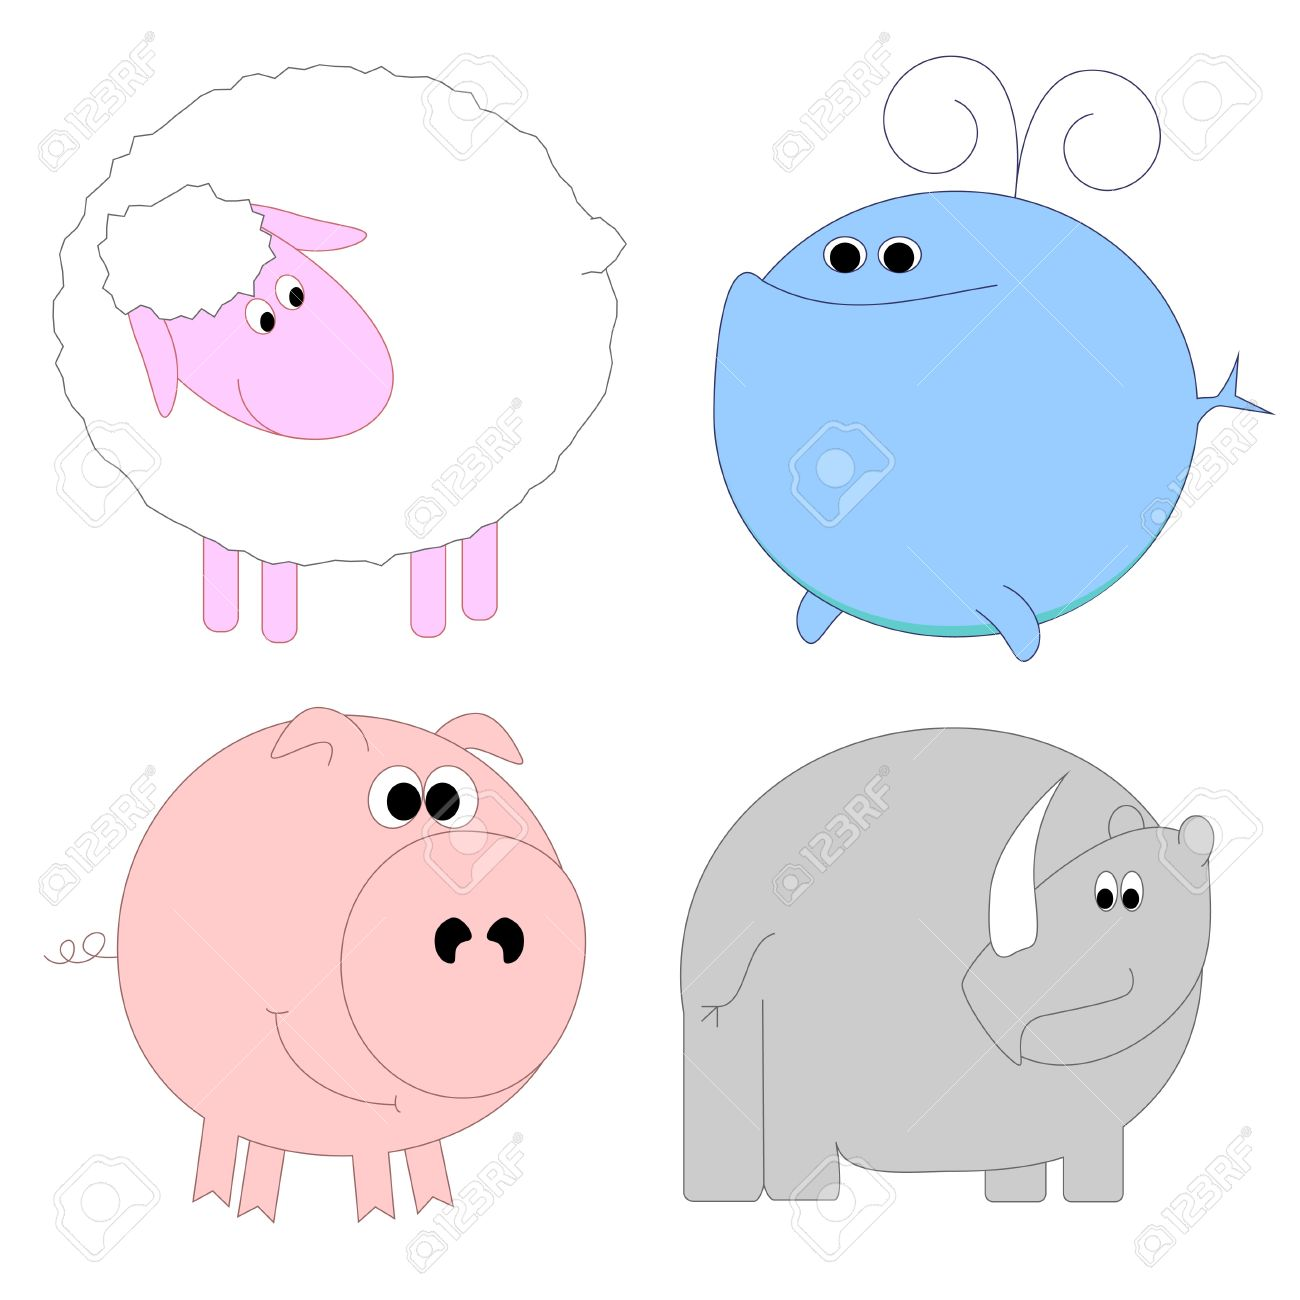 Set of funny animals - sheep, whale, pig, rhino Stock Vector - 13169522